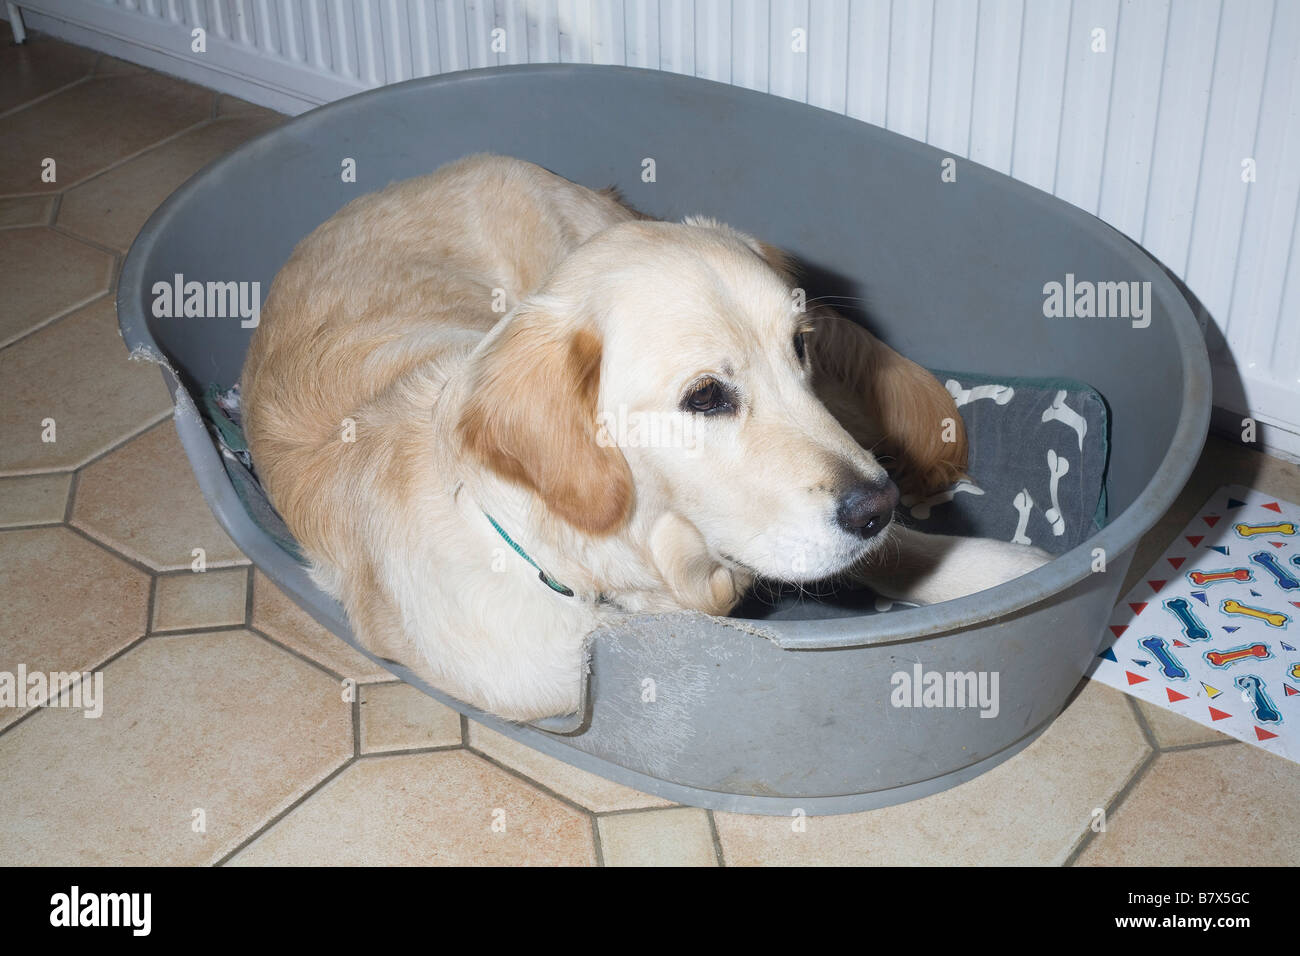 In December Xylo, a golden retriever puppy, makes himself comfortable in grey plastic basket bed - Stock Image